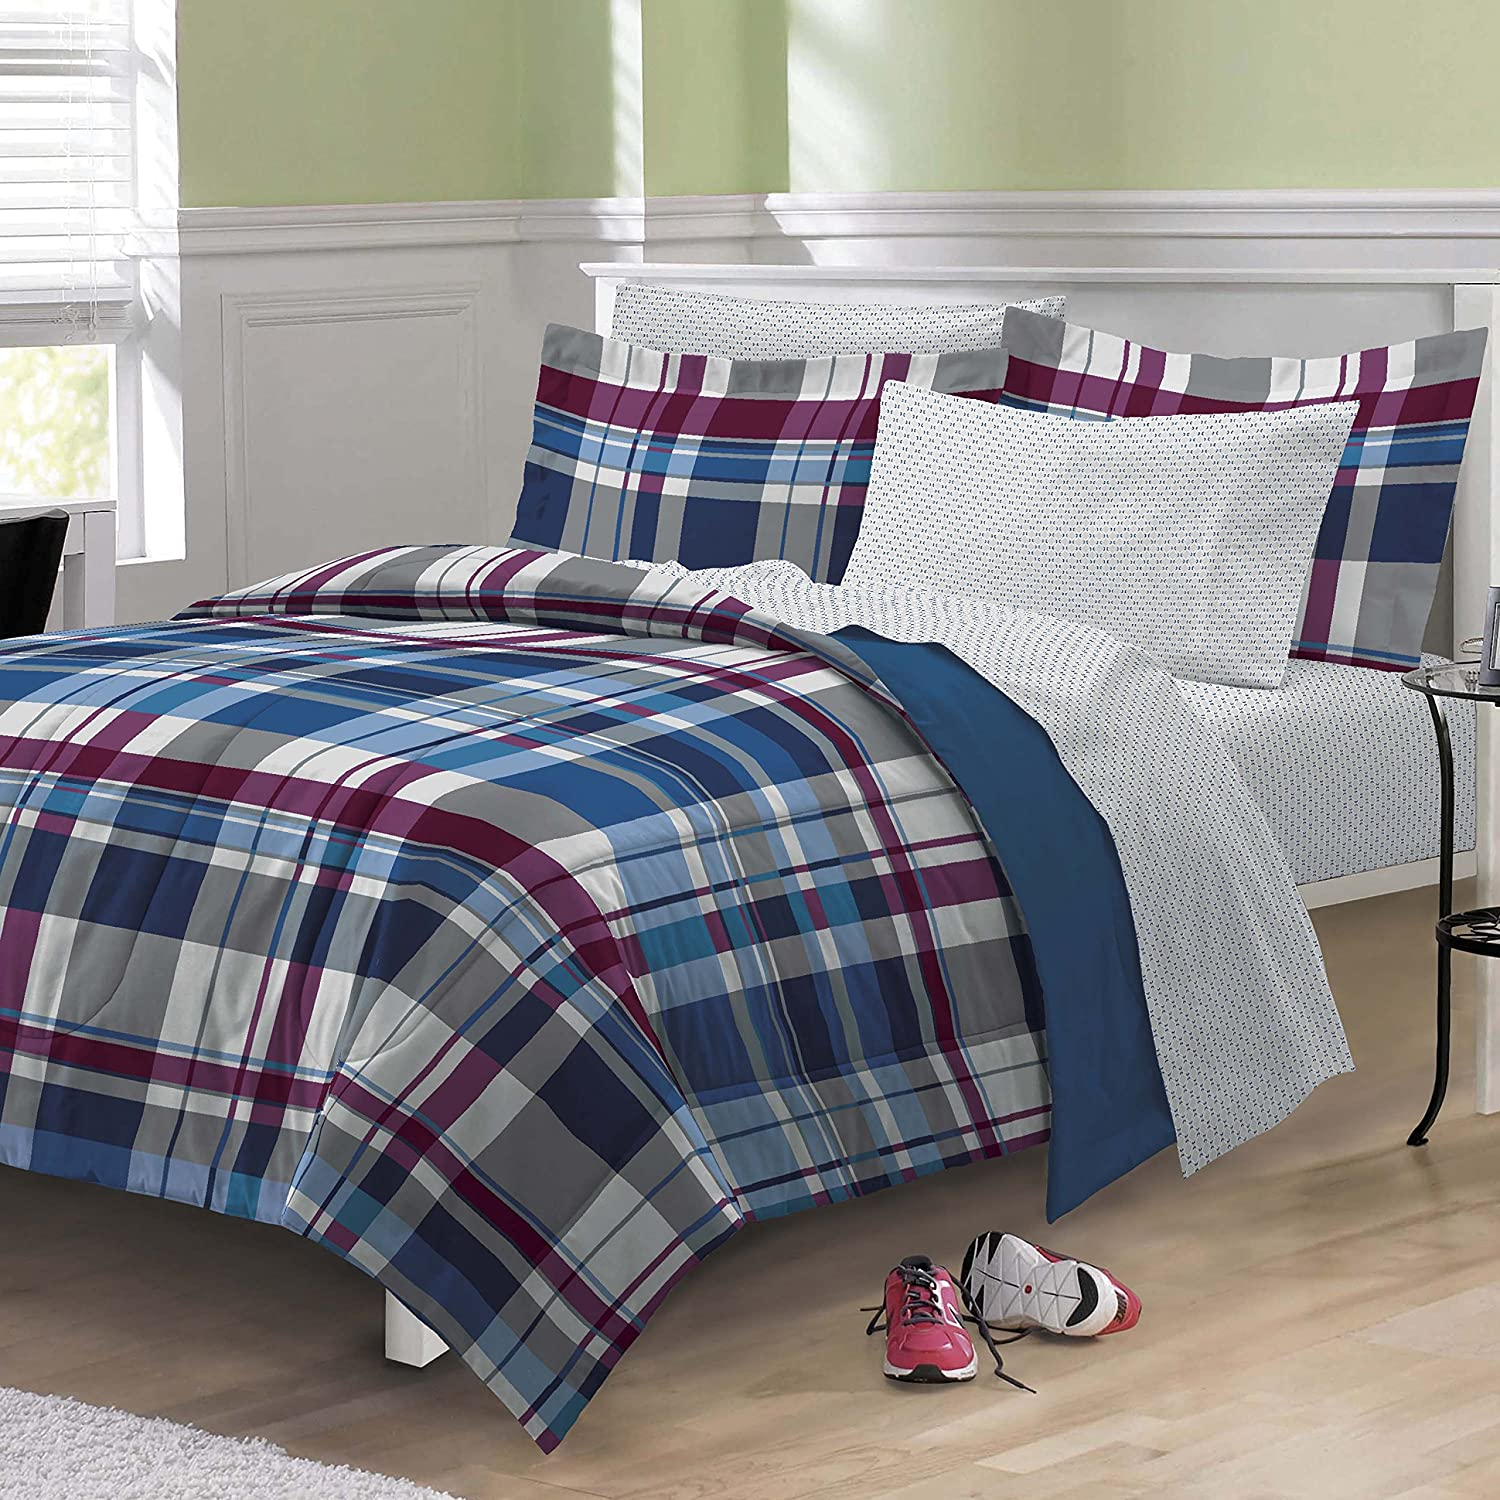 amazoncom my room varsity plaid ultra soft microfiber comforter bedding set twin home u0026 kitchen